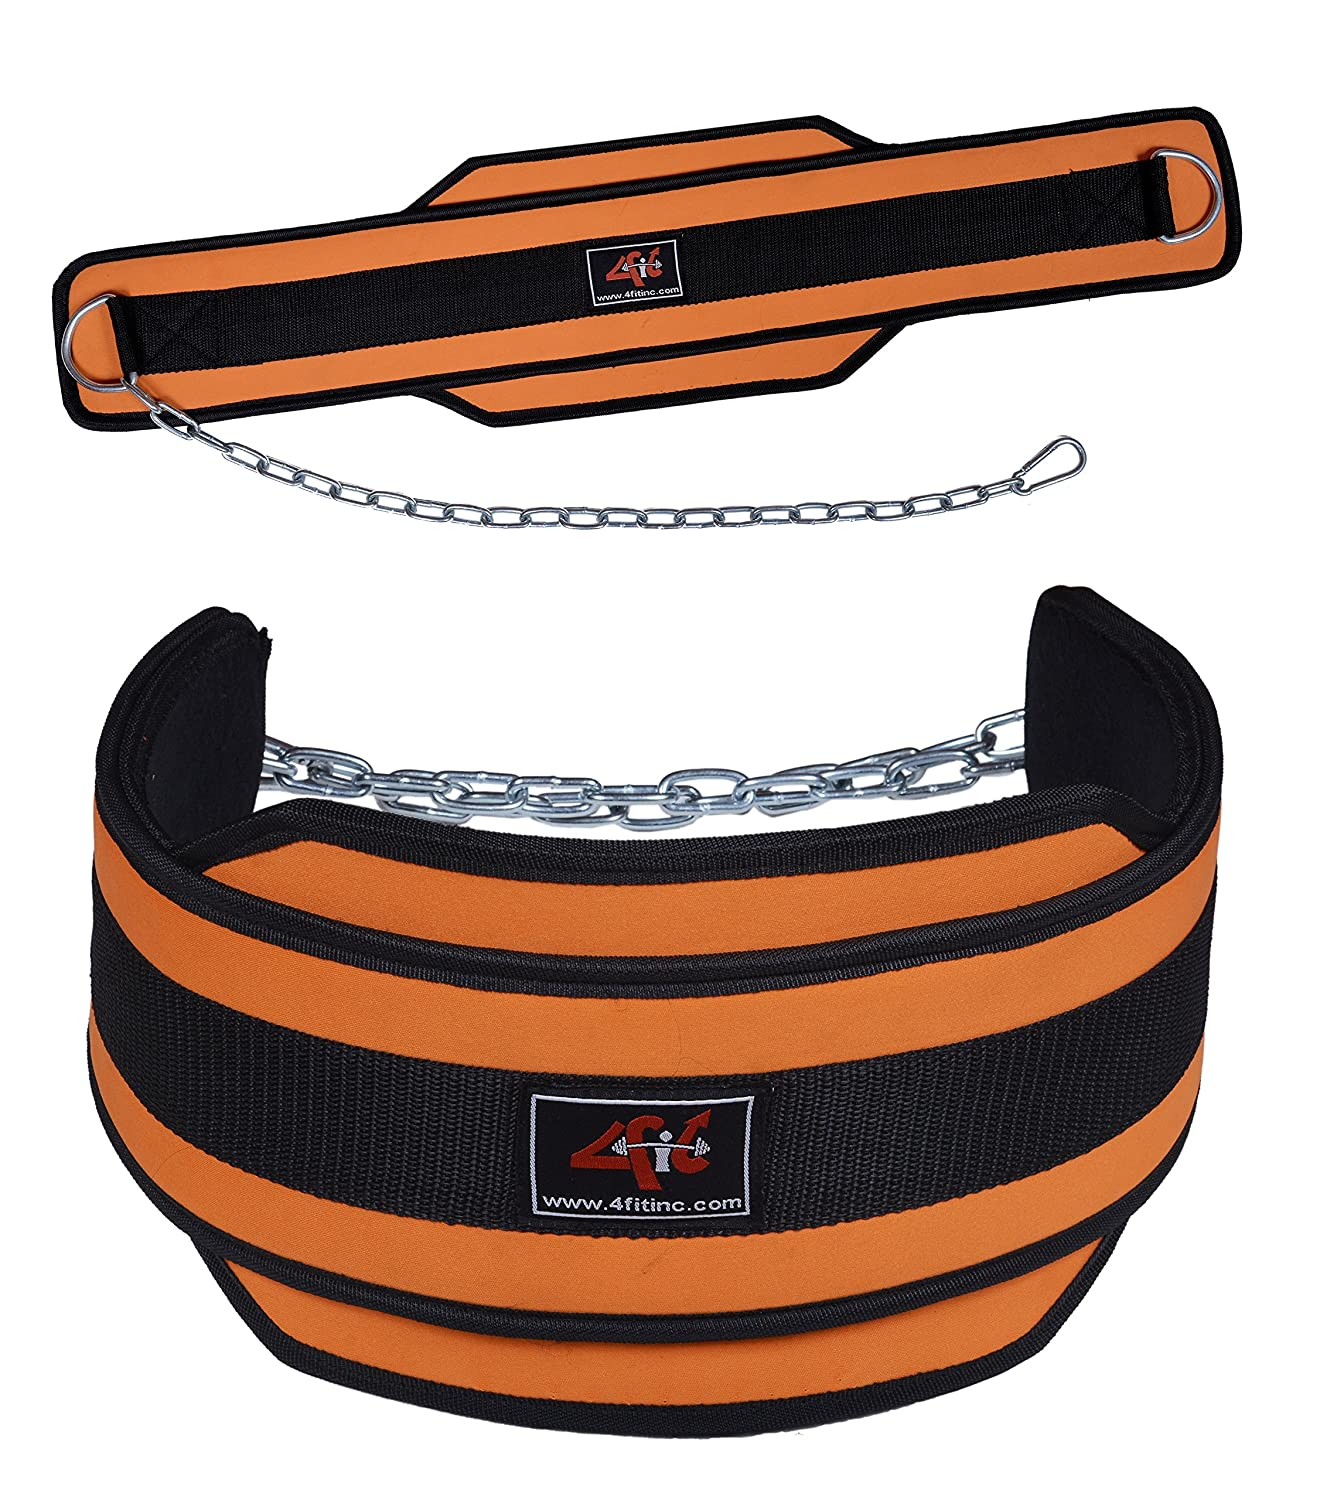 4Fit Weight Lifting Belt, Neoprene Belt Exercise Belt Heavy Chain Belt-Orange